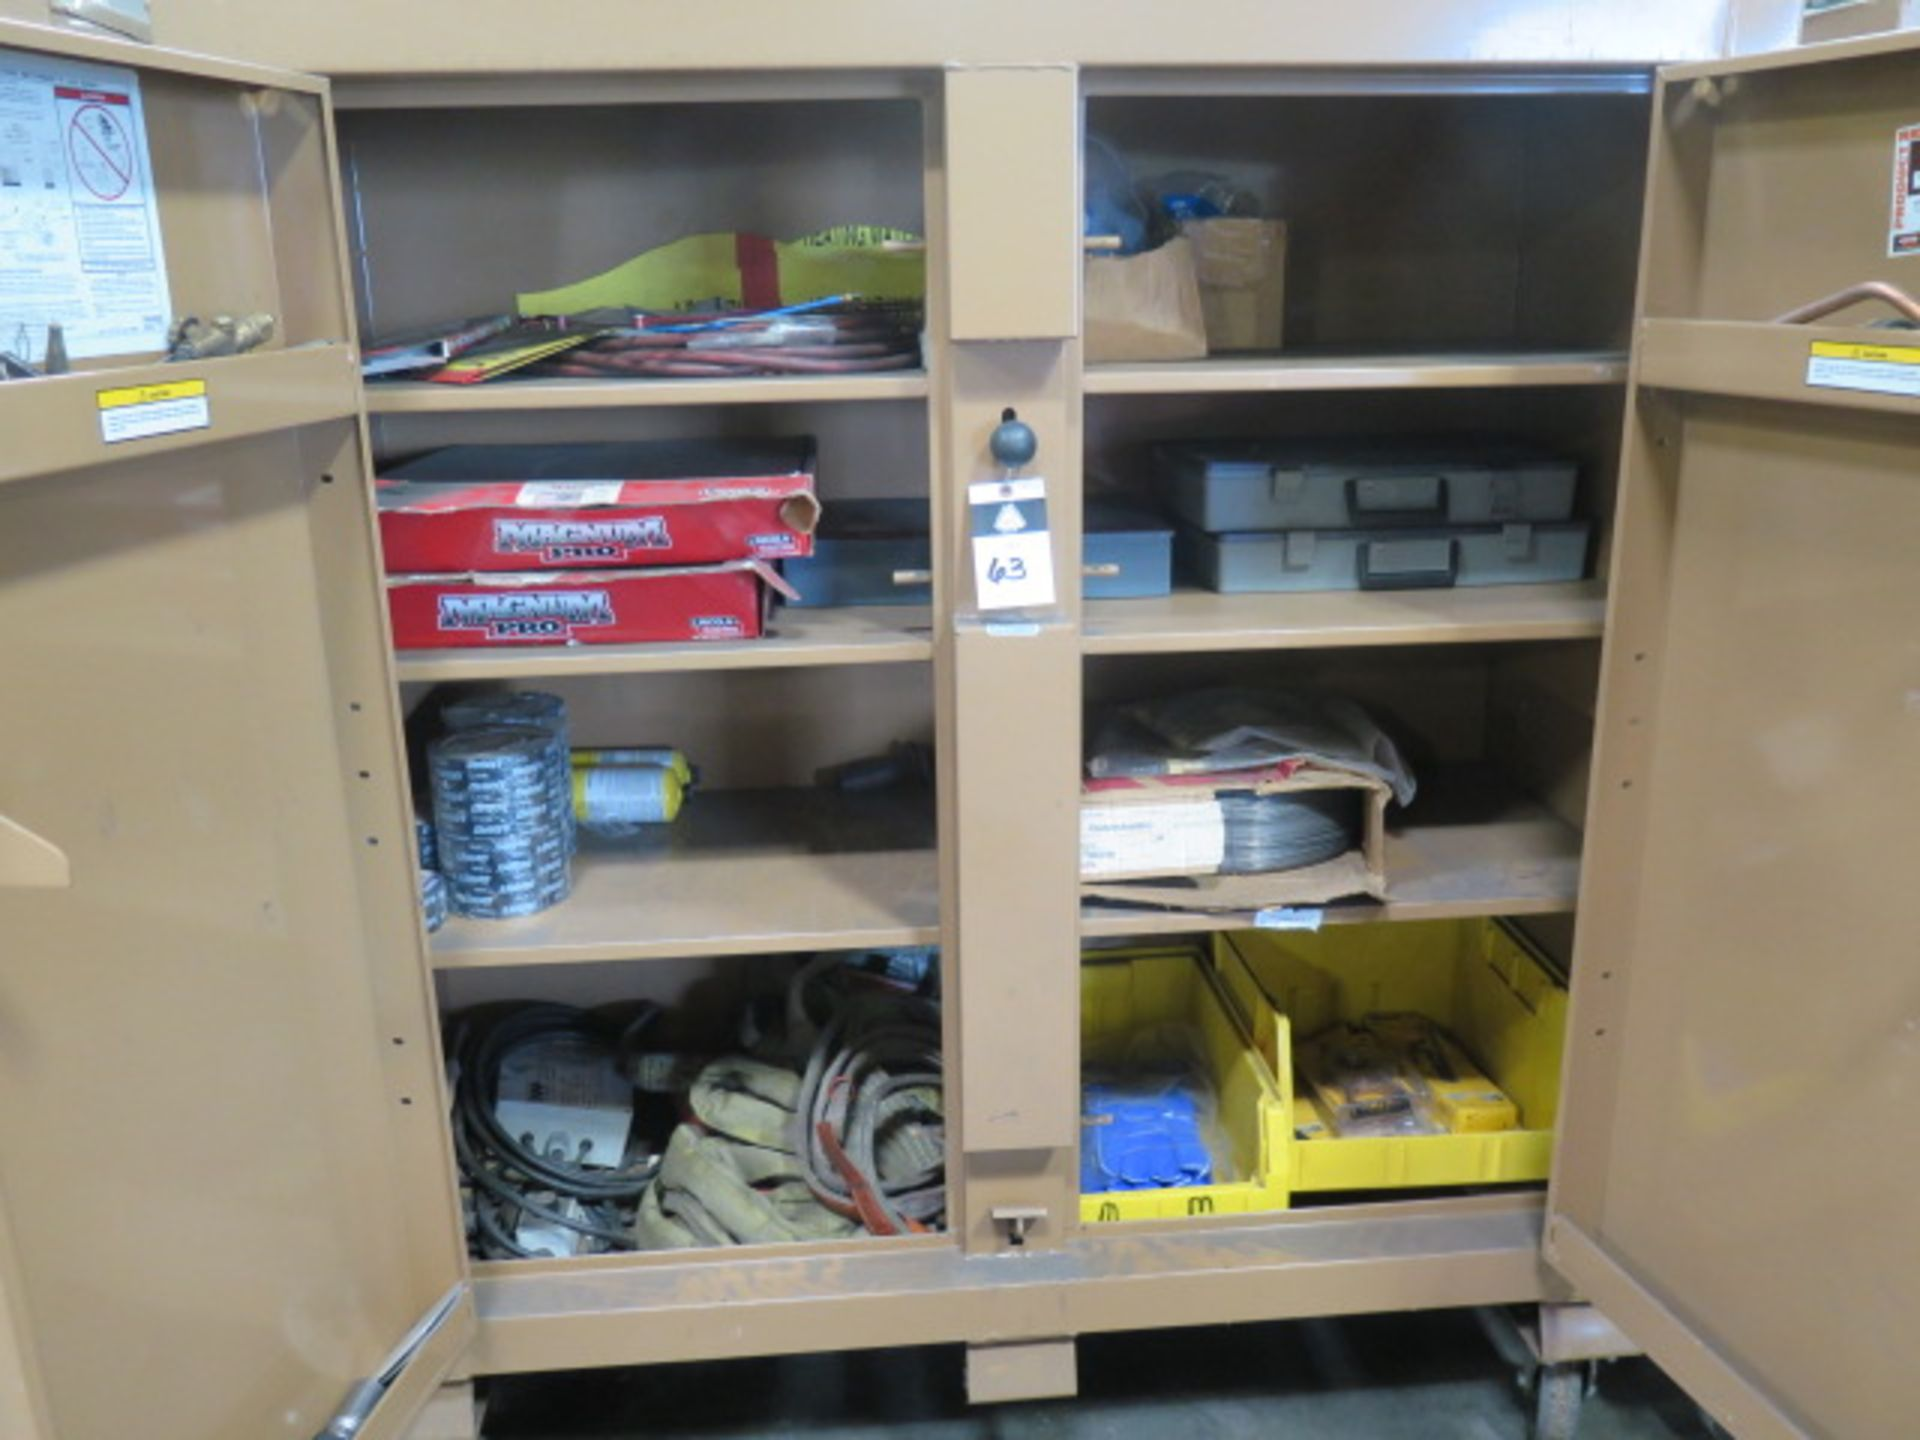 Welding Wire, Welding Guns and Misc Supplies w/ Knaack mdl. 109 Jobmaster Rolling Job Box (SOLD AS- - Image 2 of 16